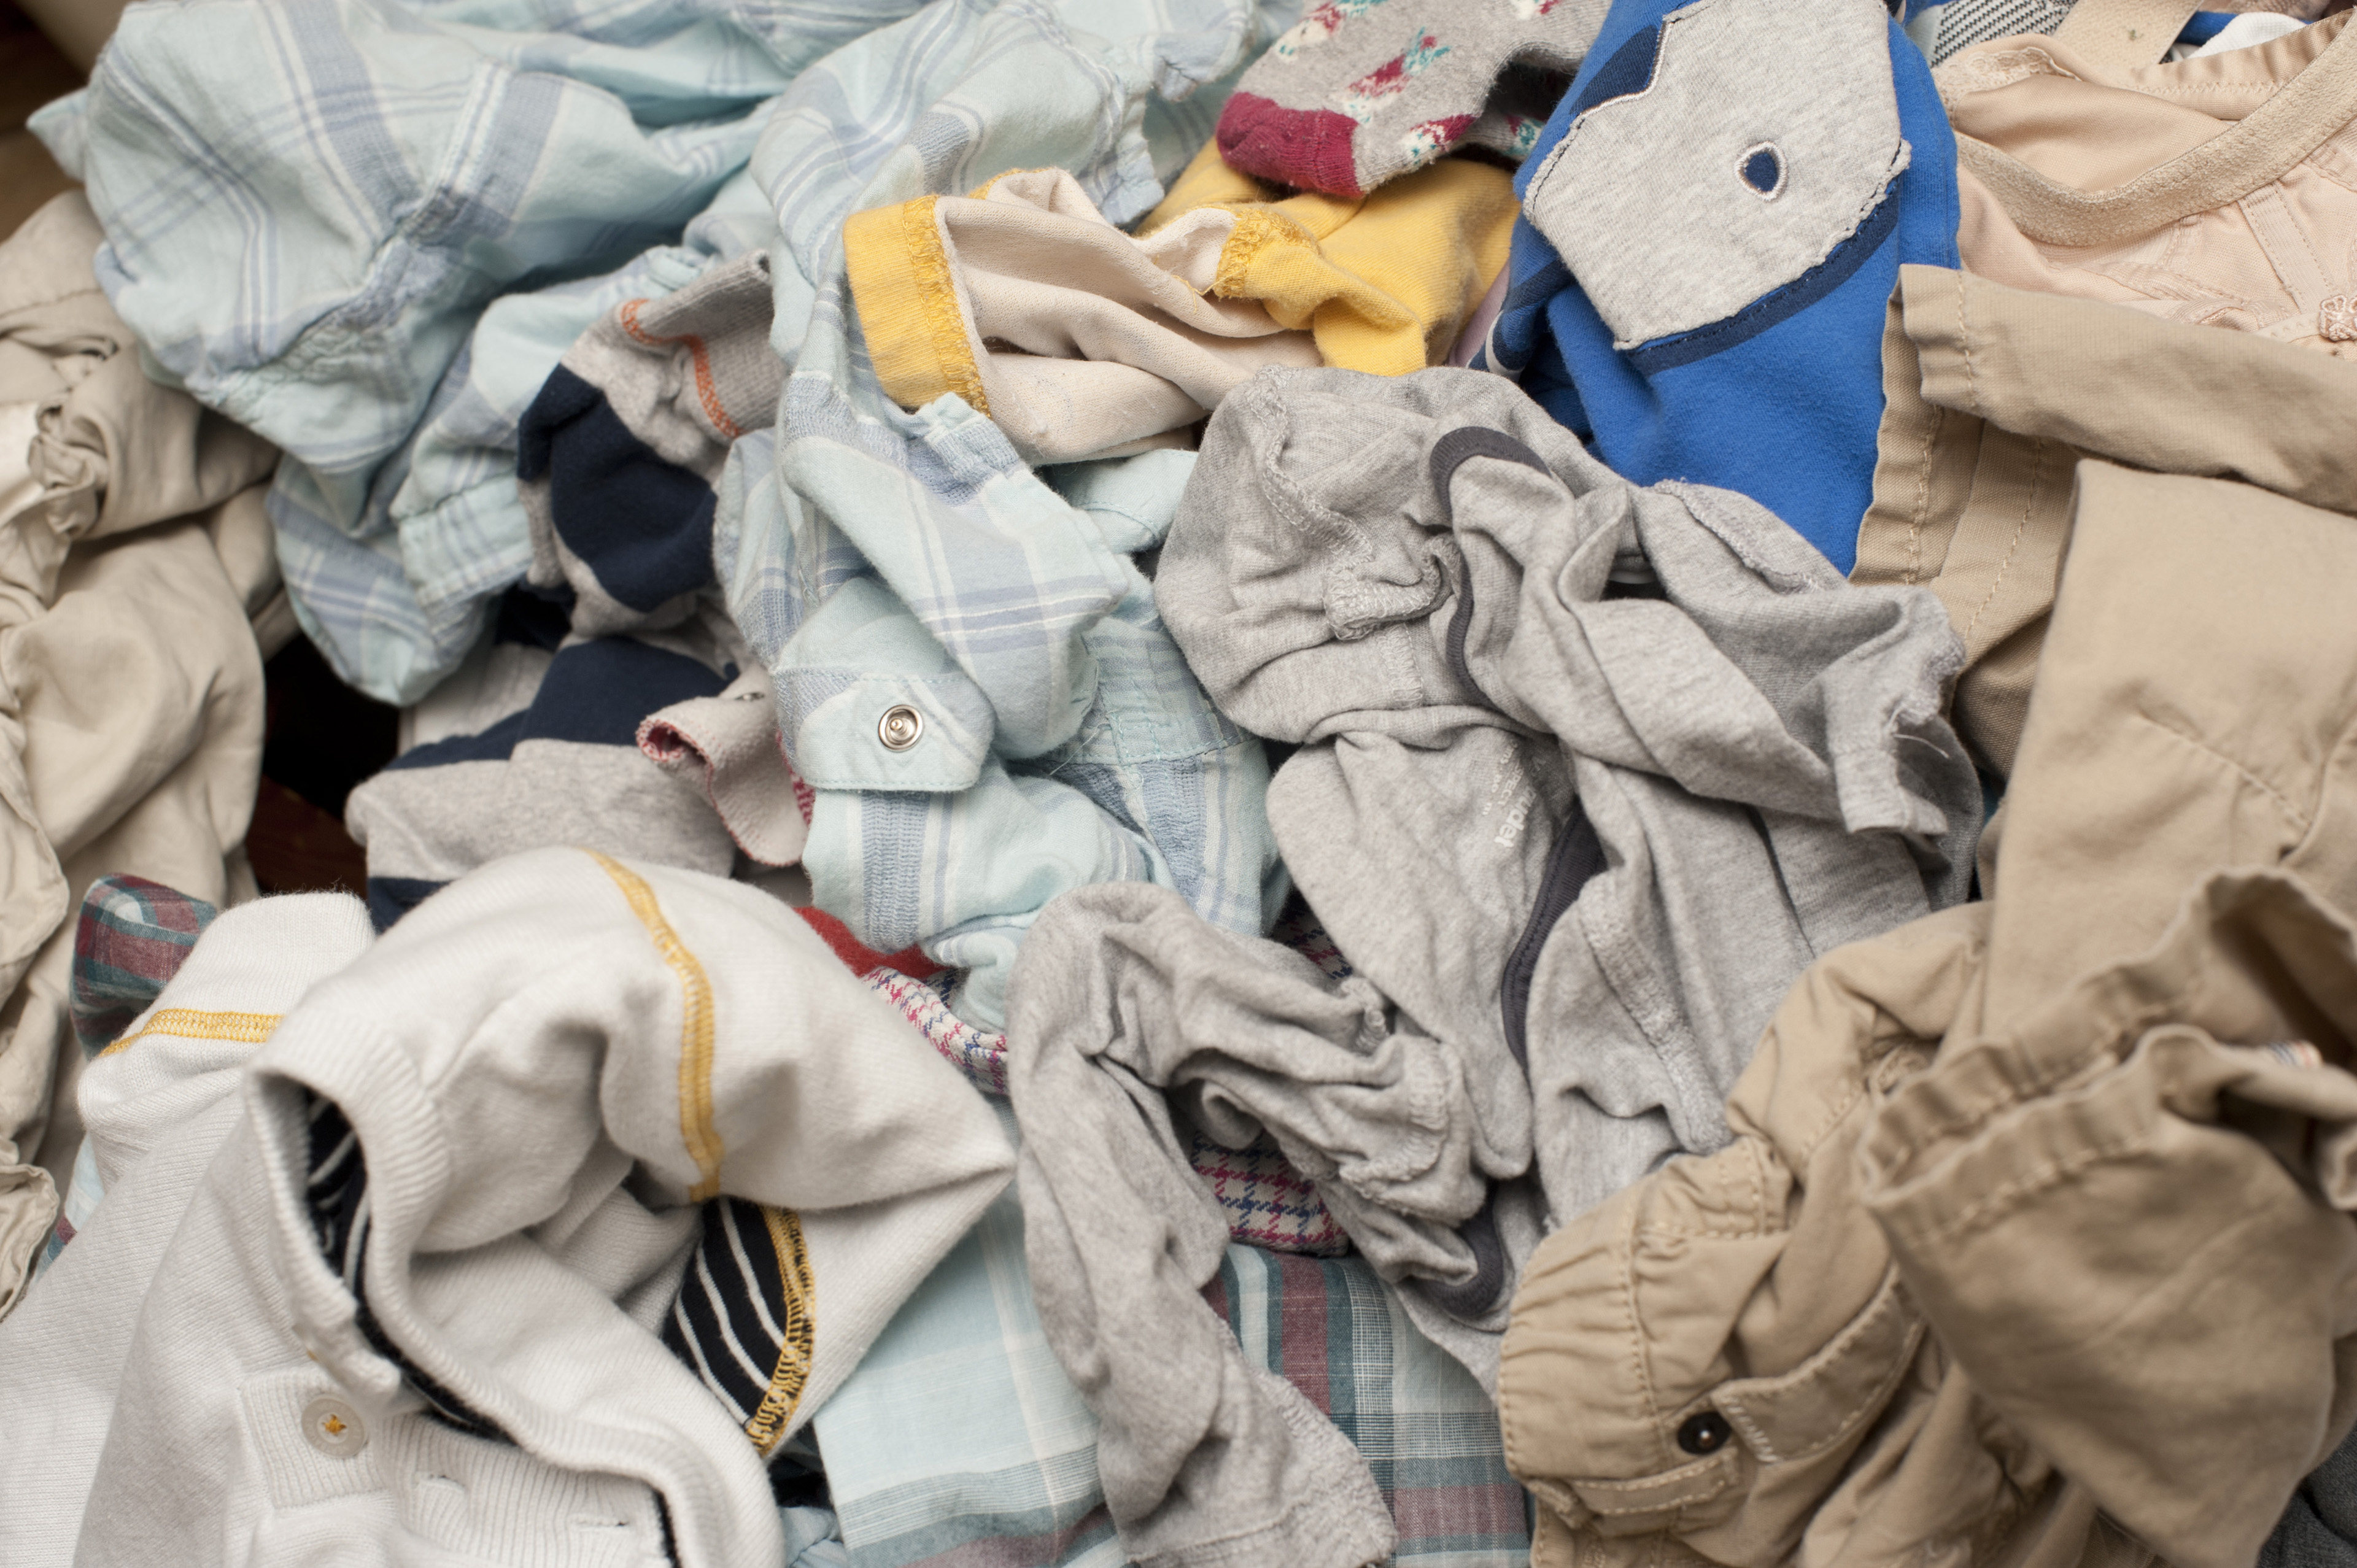 Background texture of a pile of dirty laundry or washing with jumbled clothing